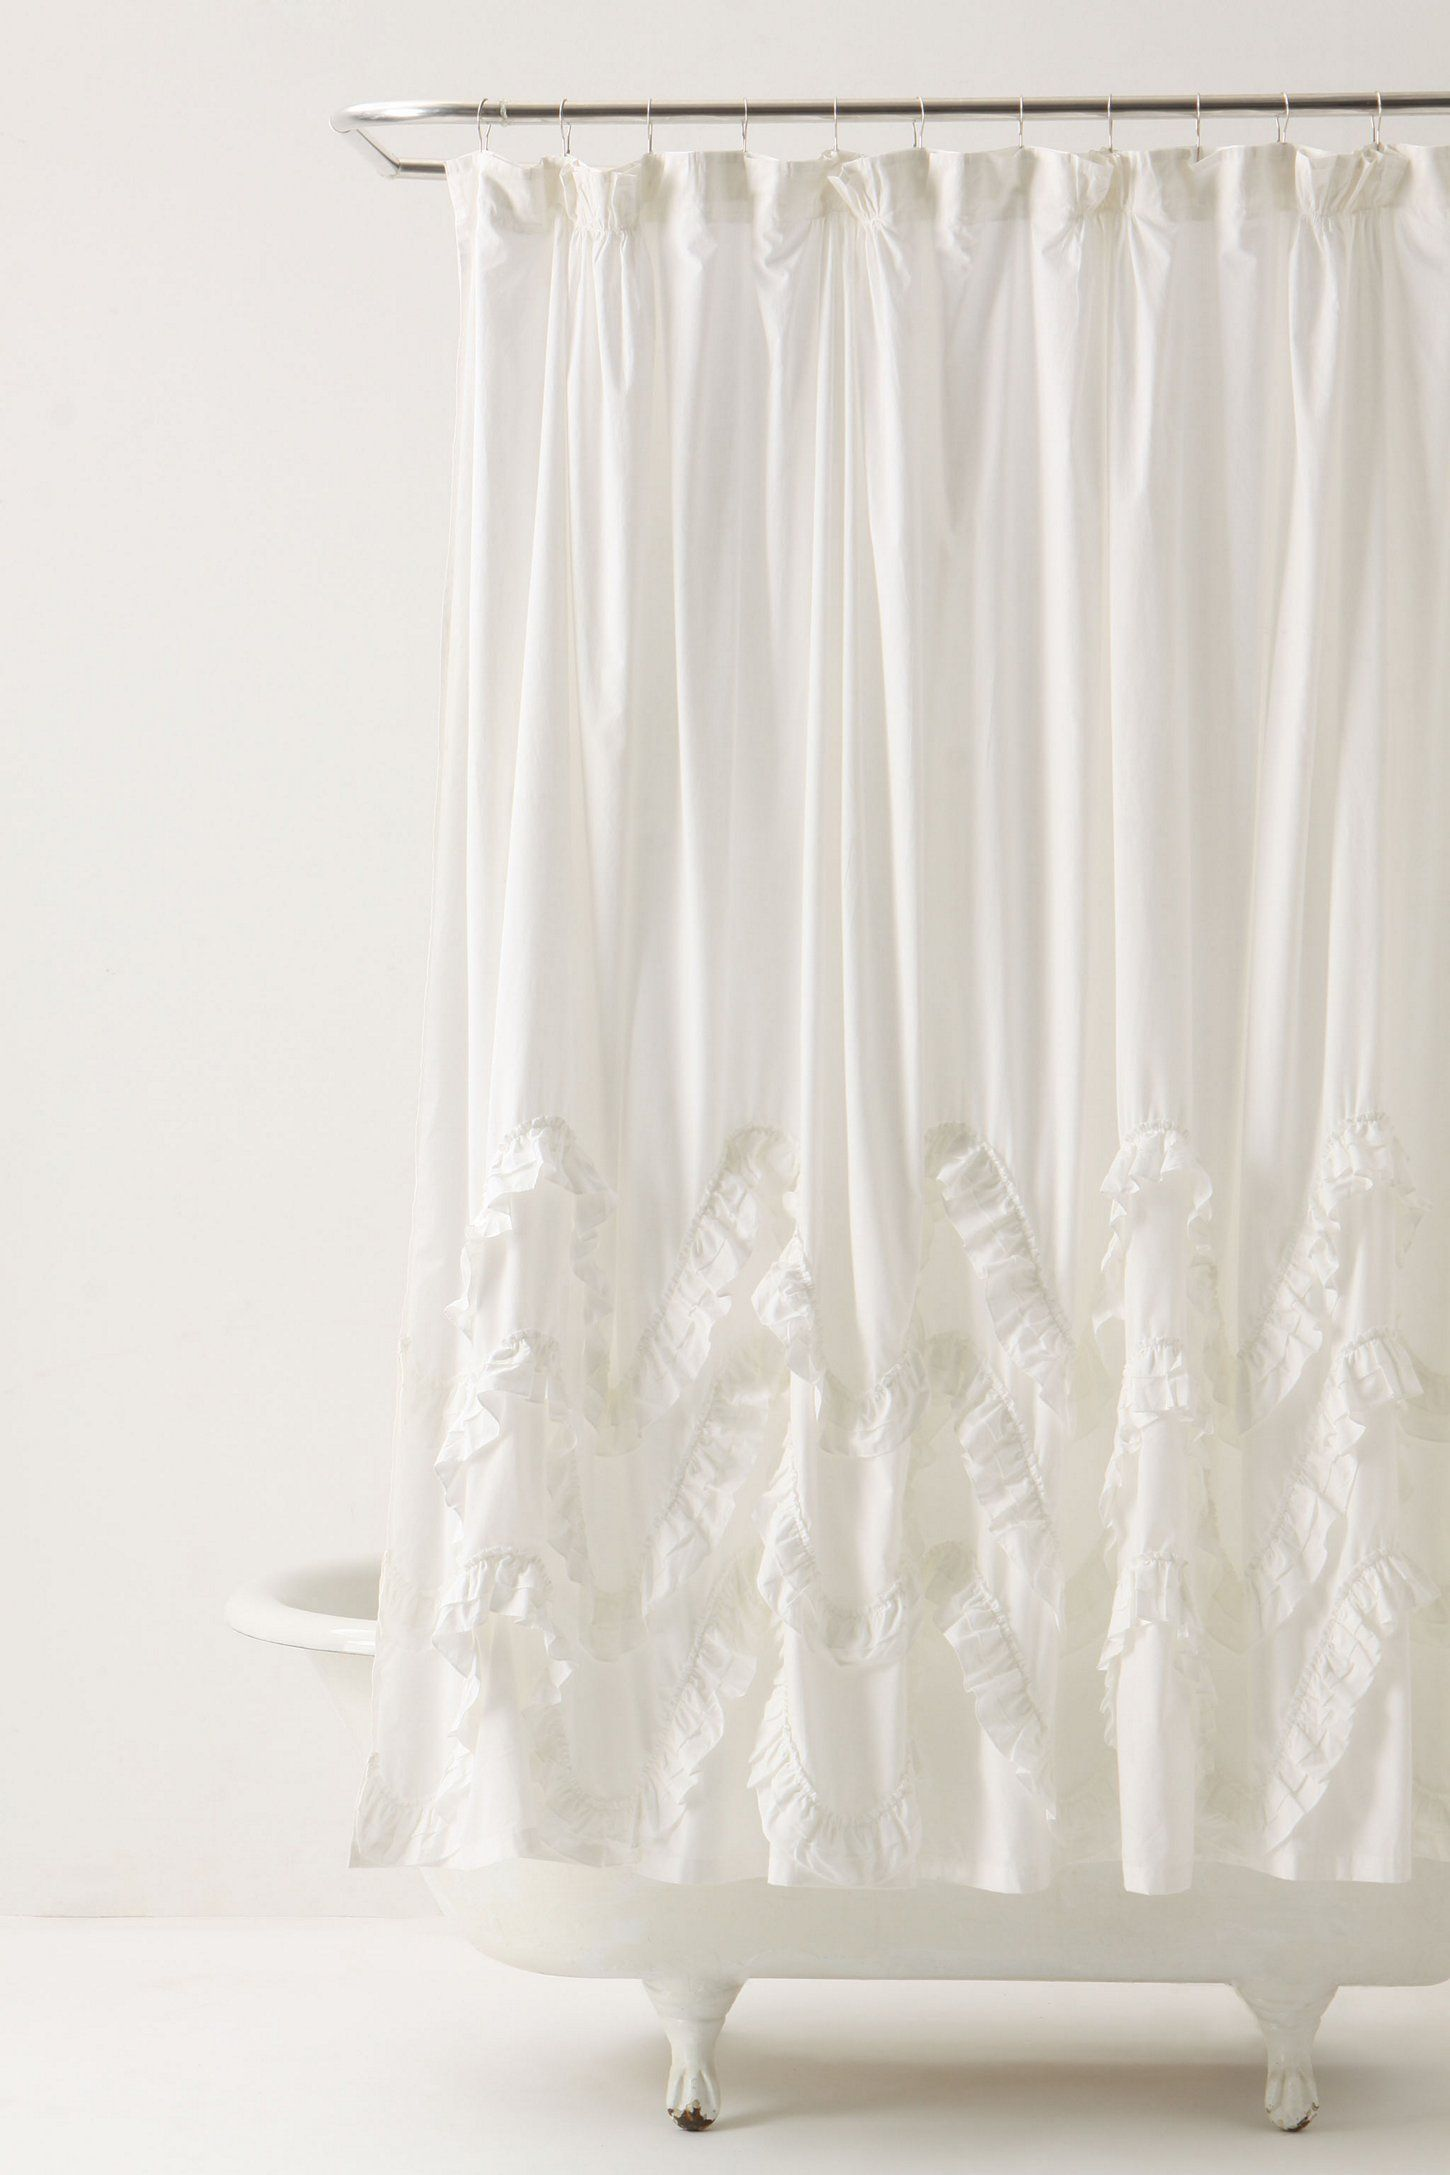 Waves Of Ruffles Shower Curtain - Anthropologie.com | Dream Home ...